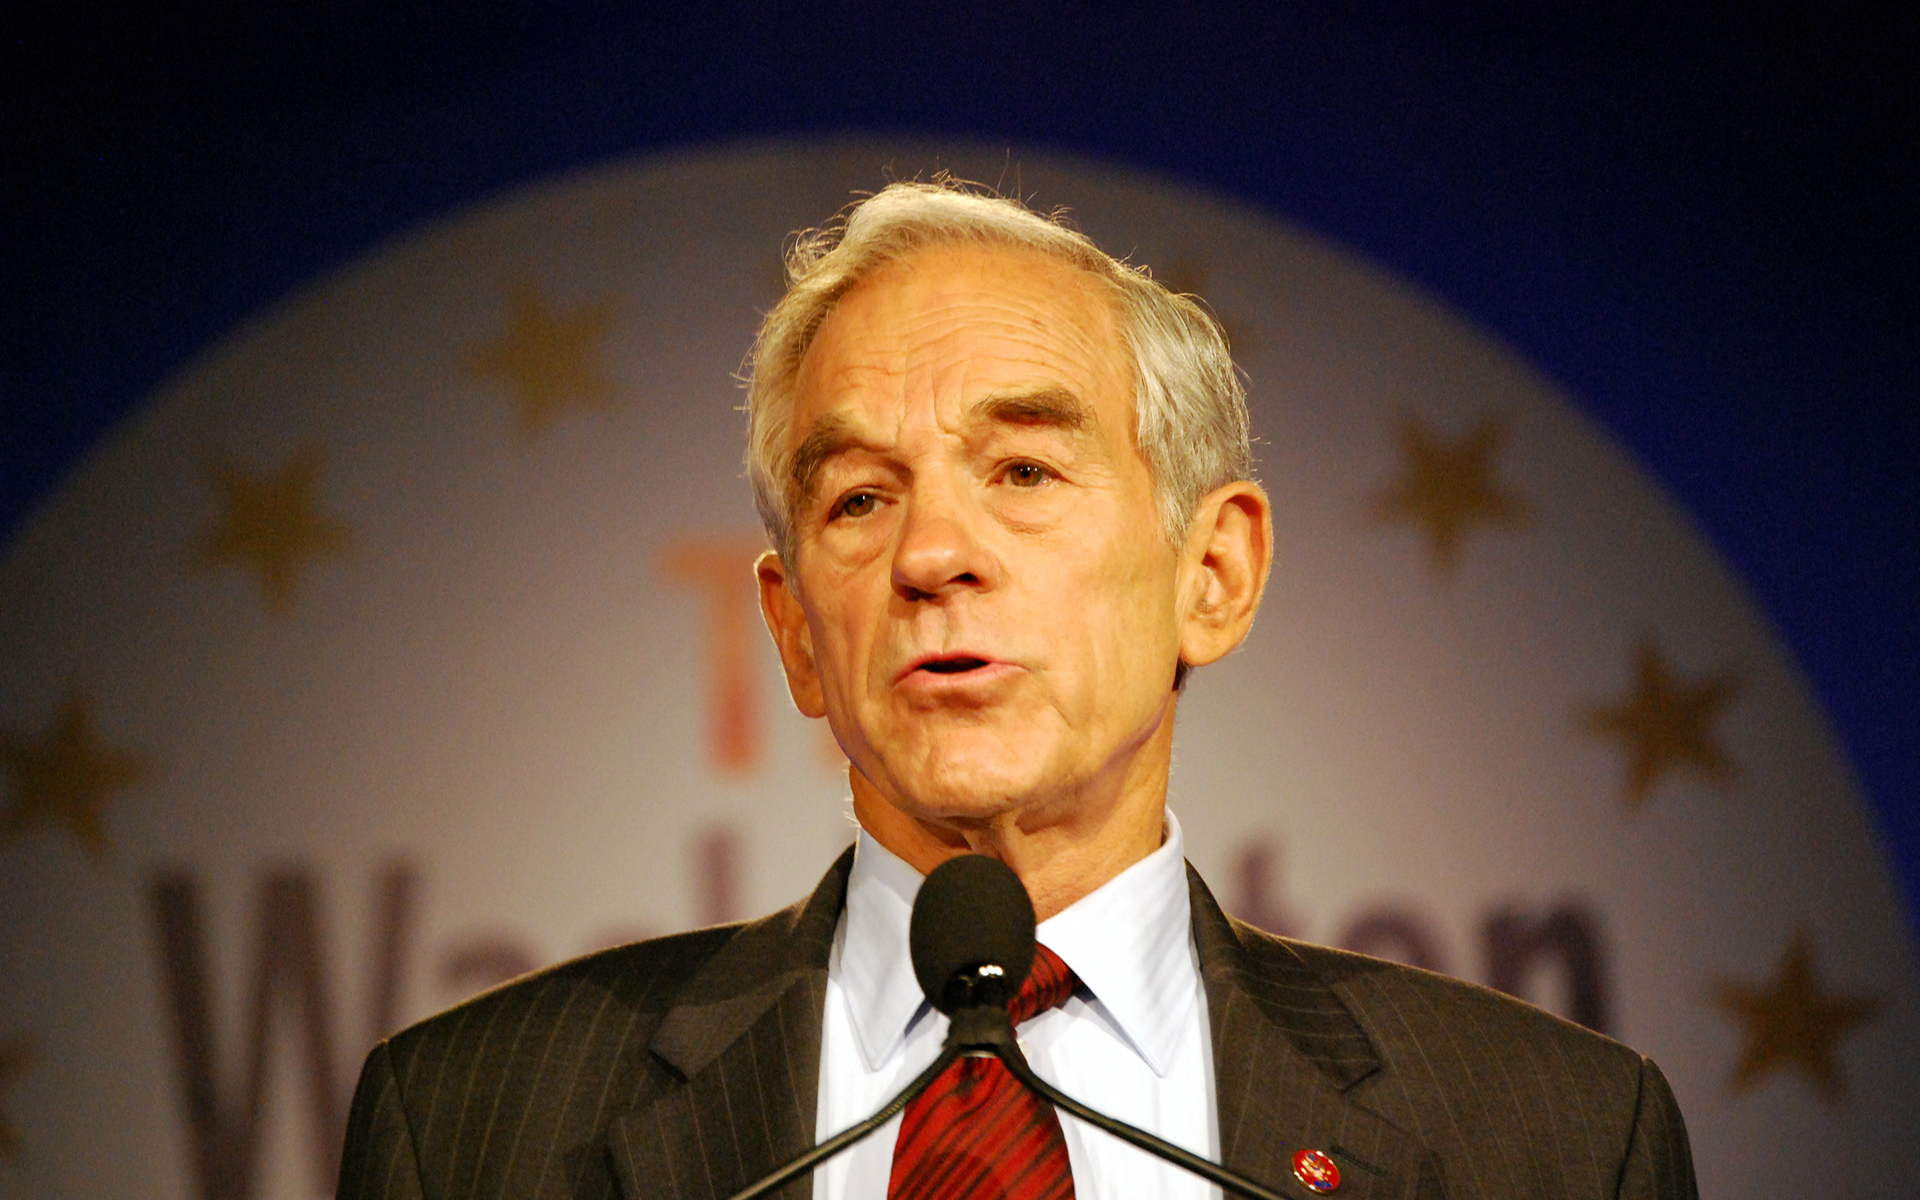 ron paul - photo #13